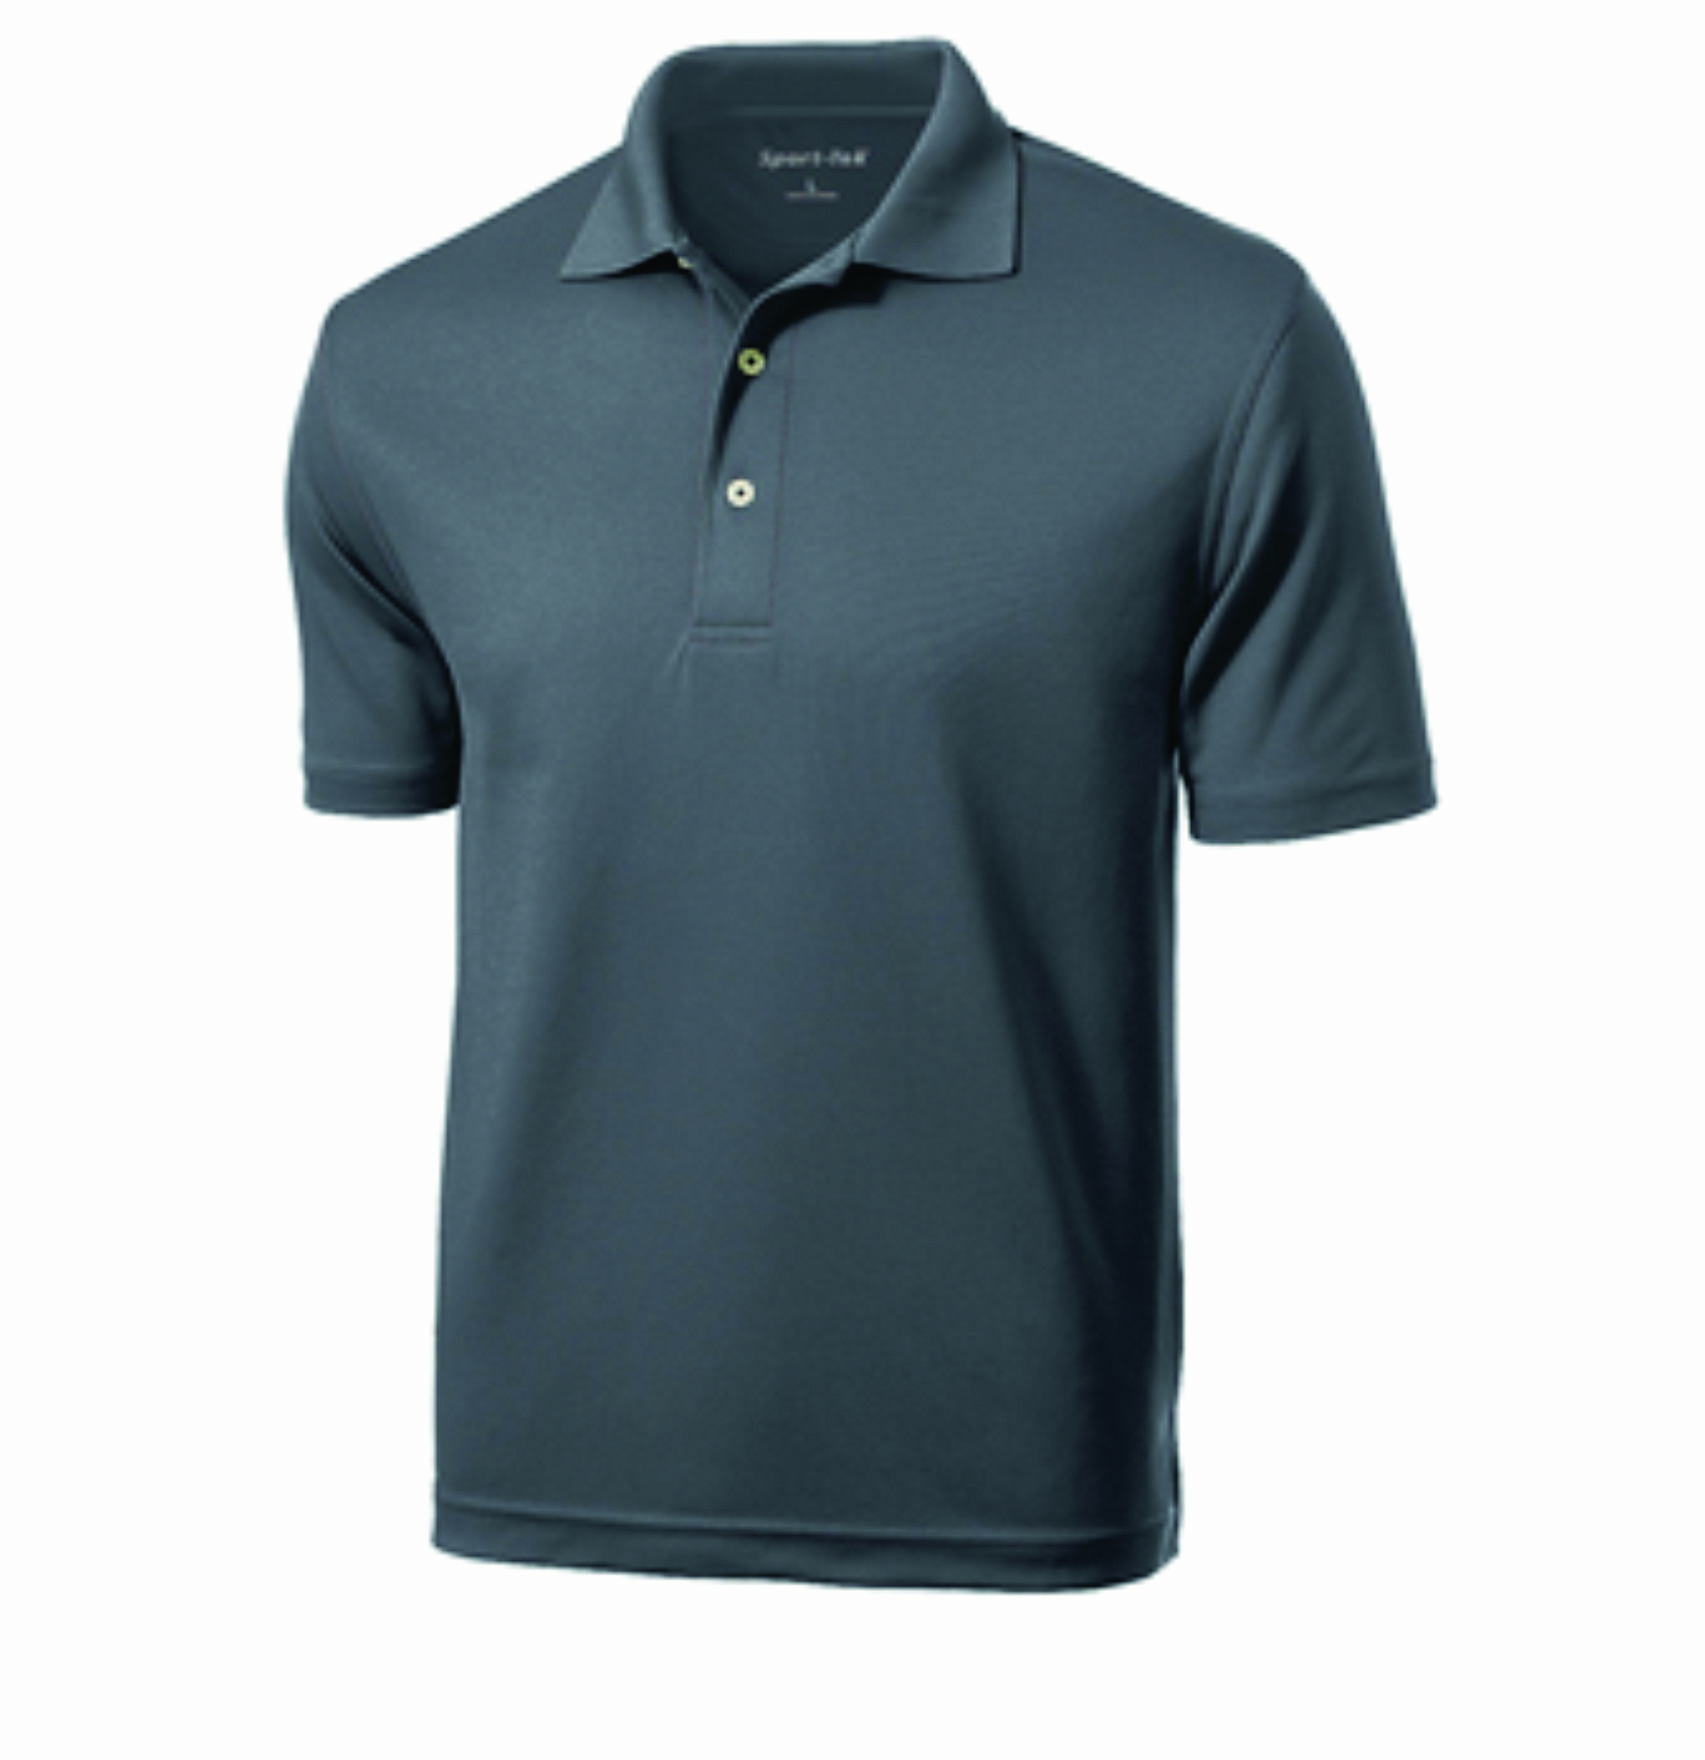 Custom Machine Works Product Sport Tek Dri Mesh Polo